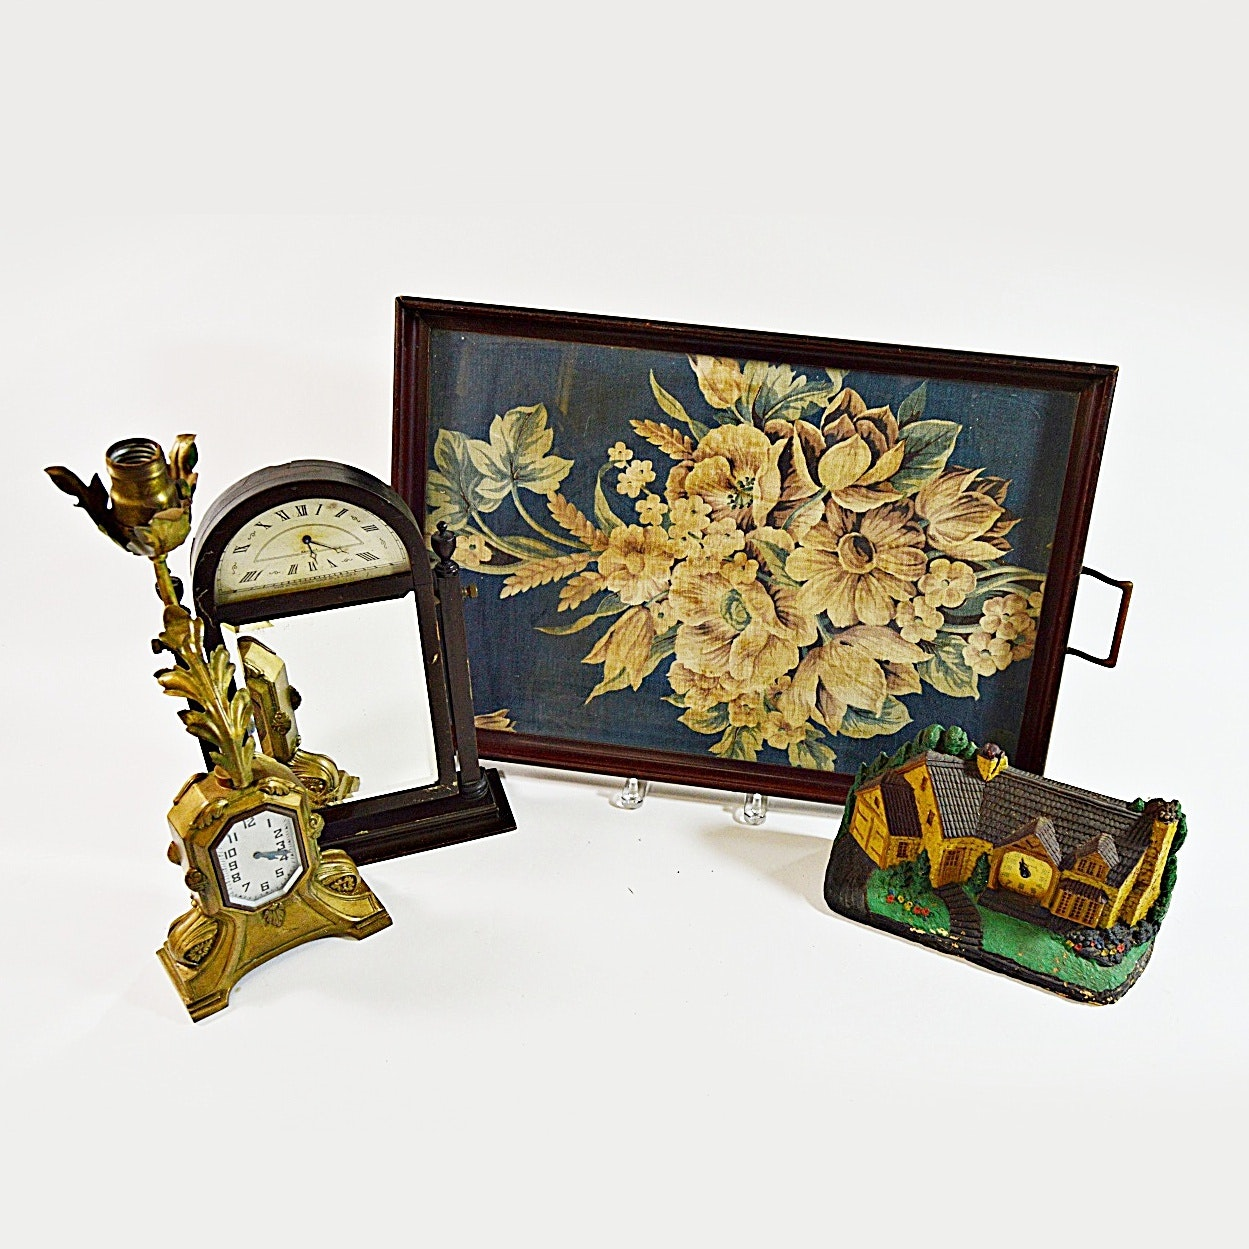 Vintage Clocks and Tray